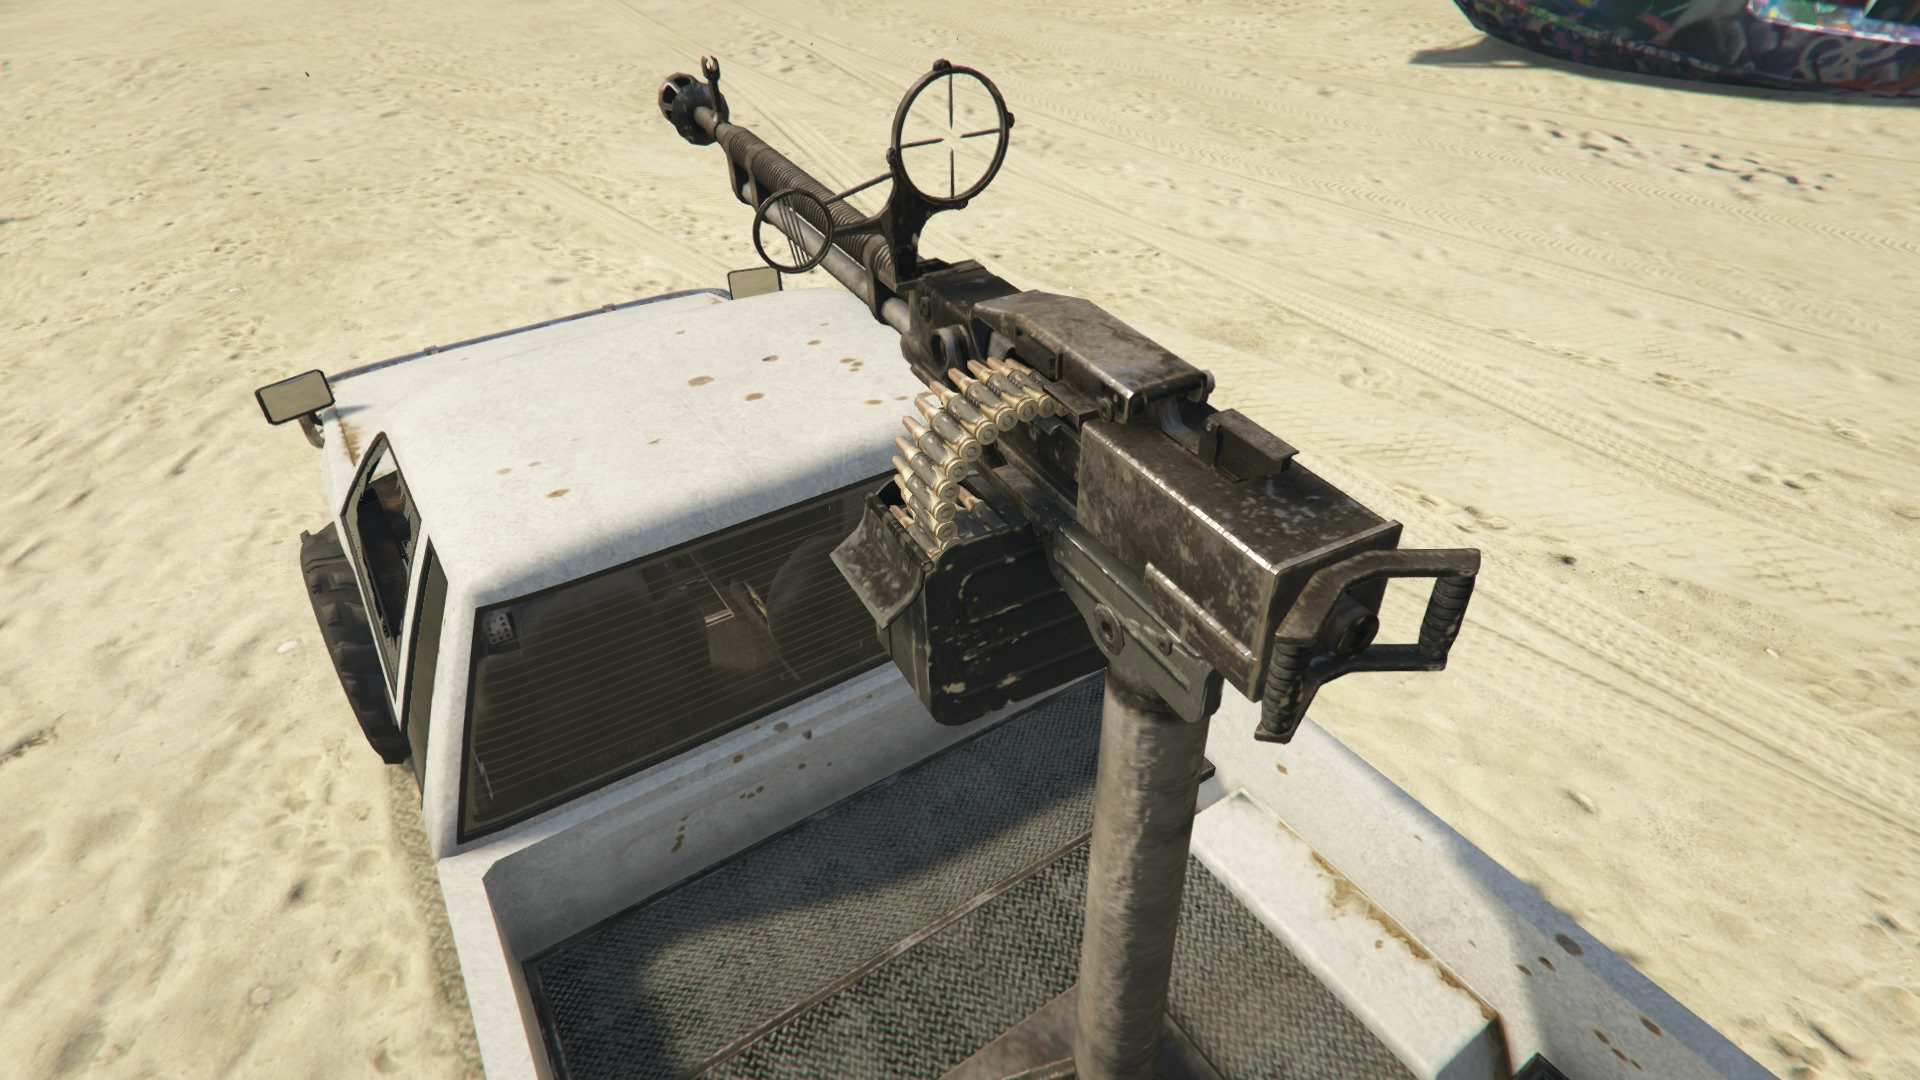 Vehicle Features/Mounted Weapons | GTA Wiki | FANDOM powered by Wikia